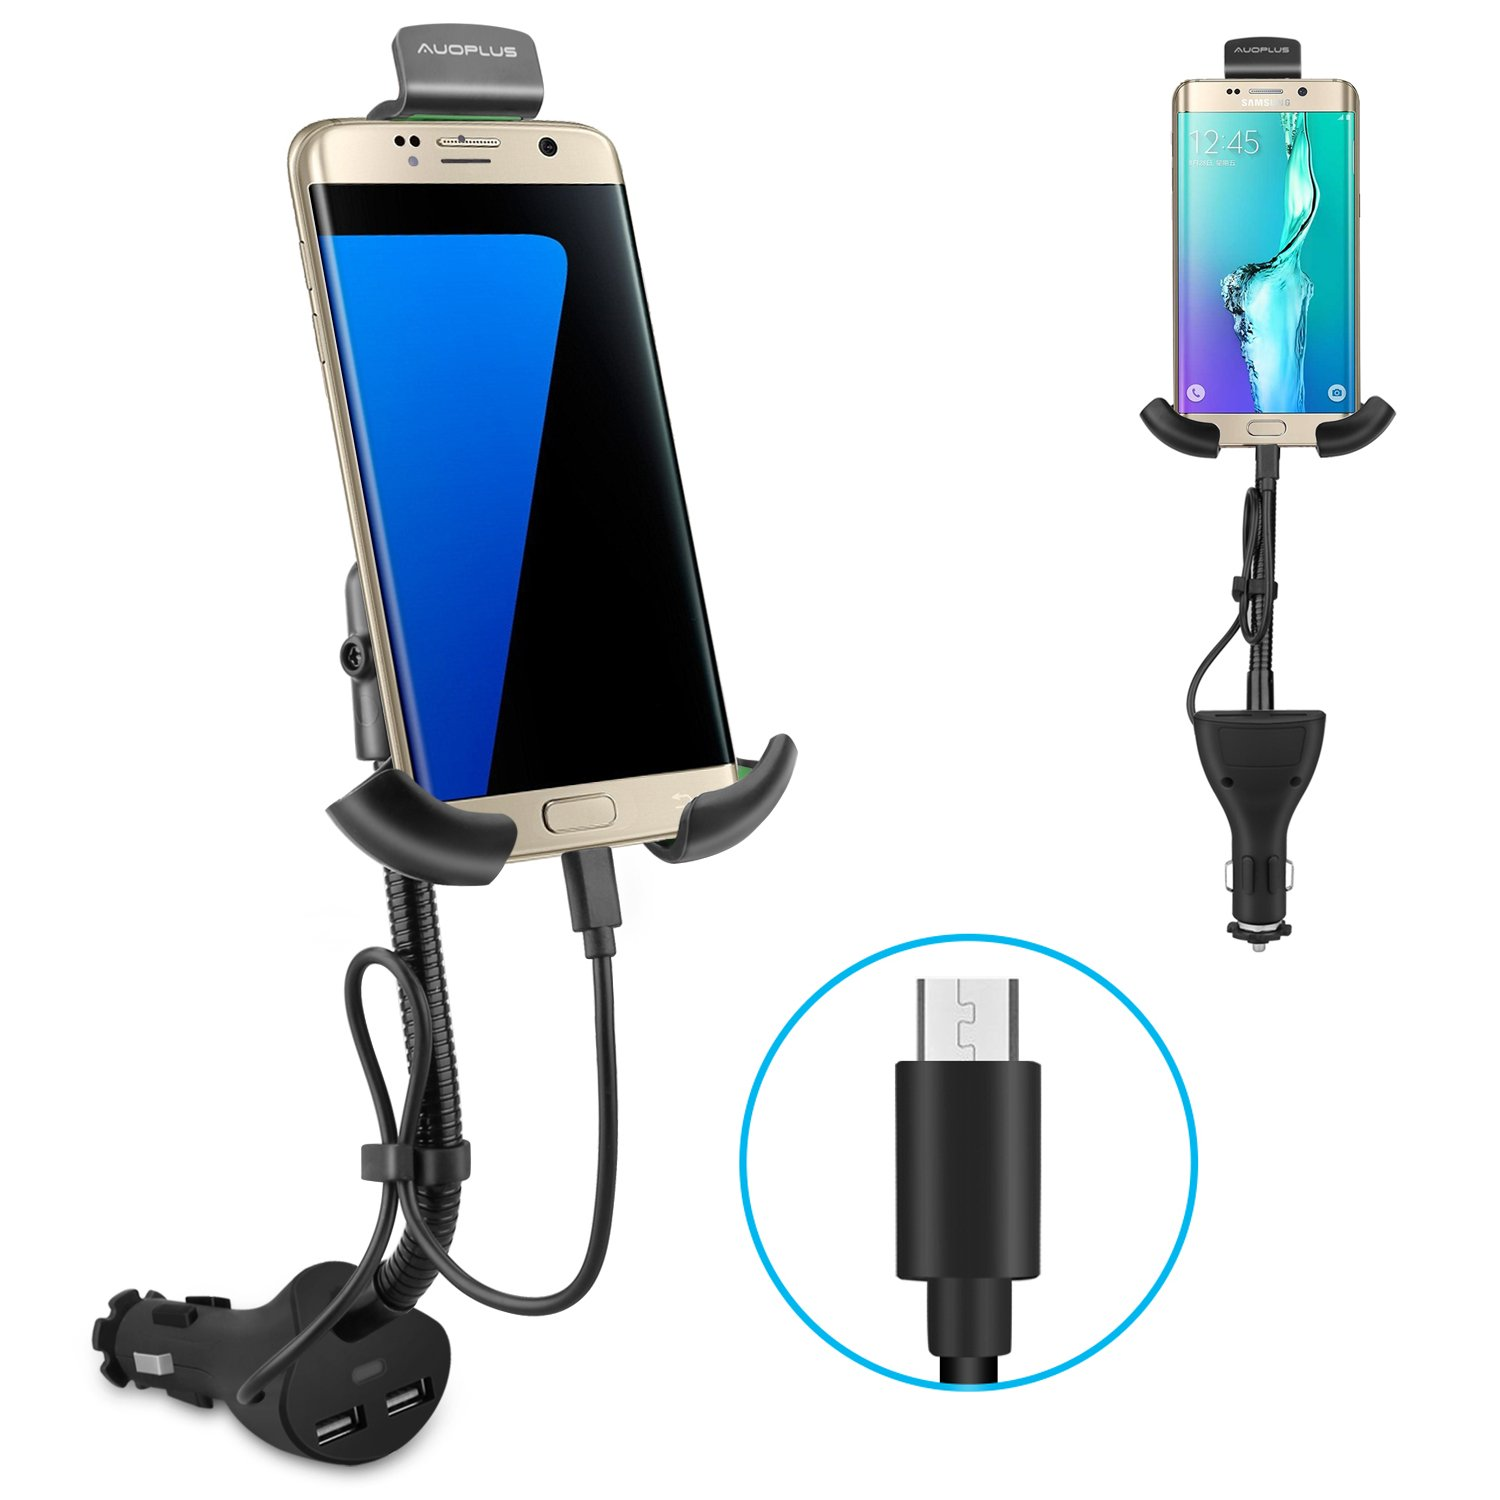 AUOPLUS Gooseneck Car Outlet Mount Cigarette Lighter Phone Holder Charger with Built-in Charging Cord for Samsung Galaxy and More Android Smartphones by AUOPLUS (Image #1)